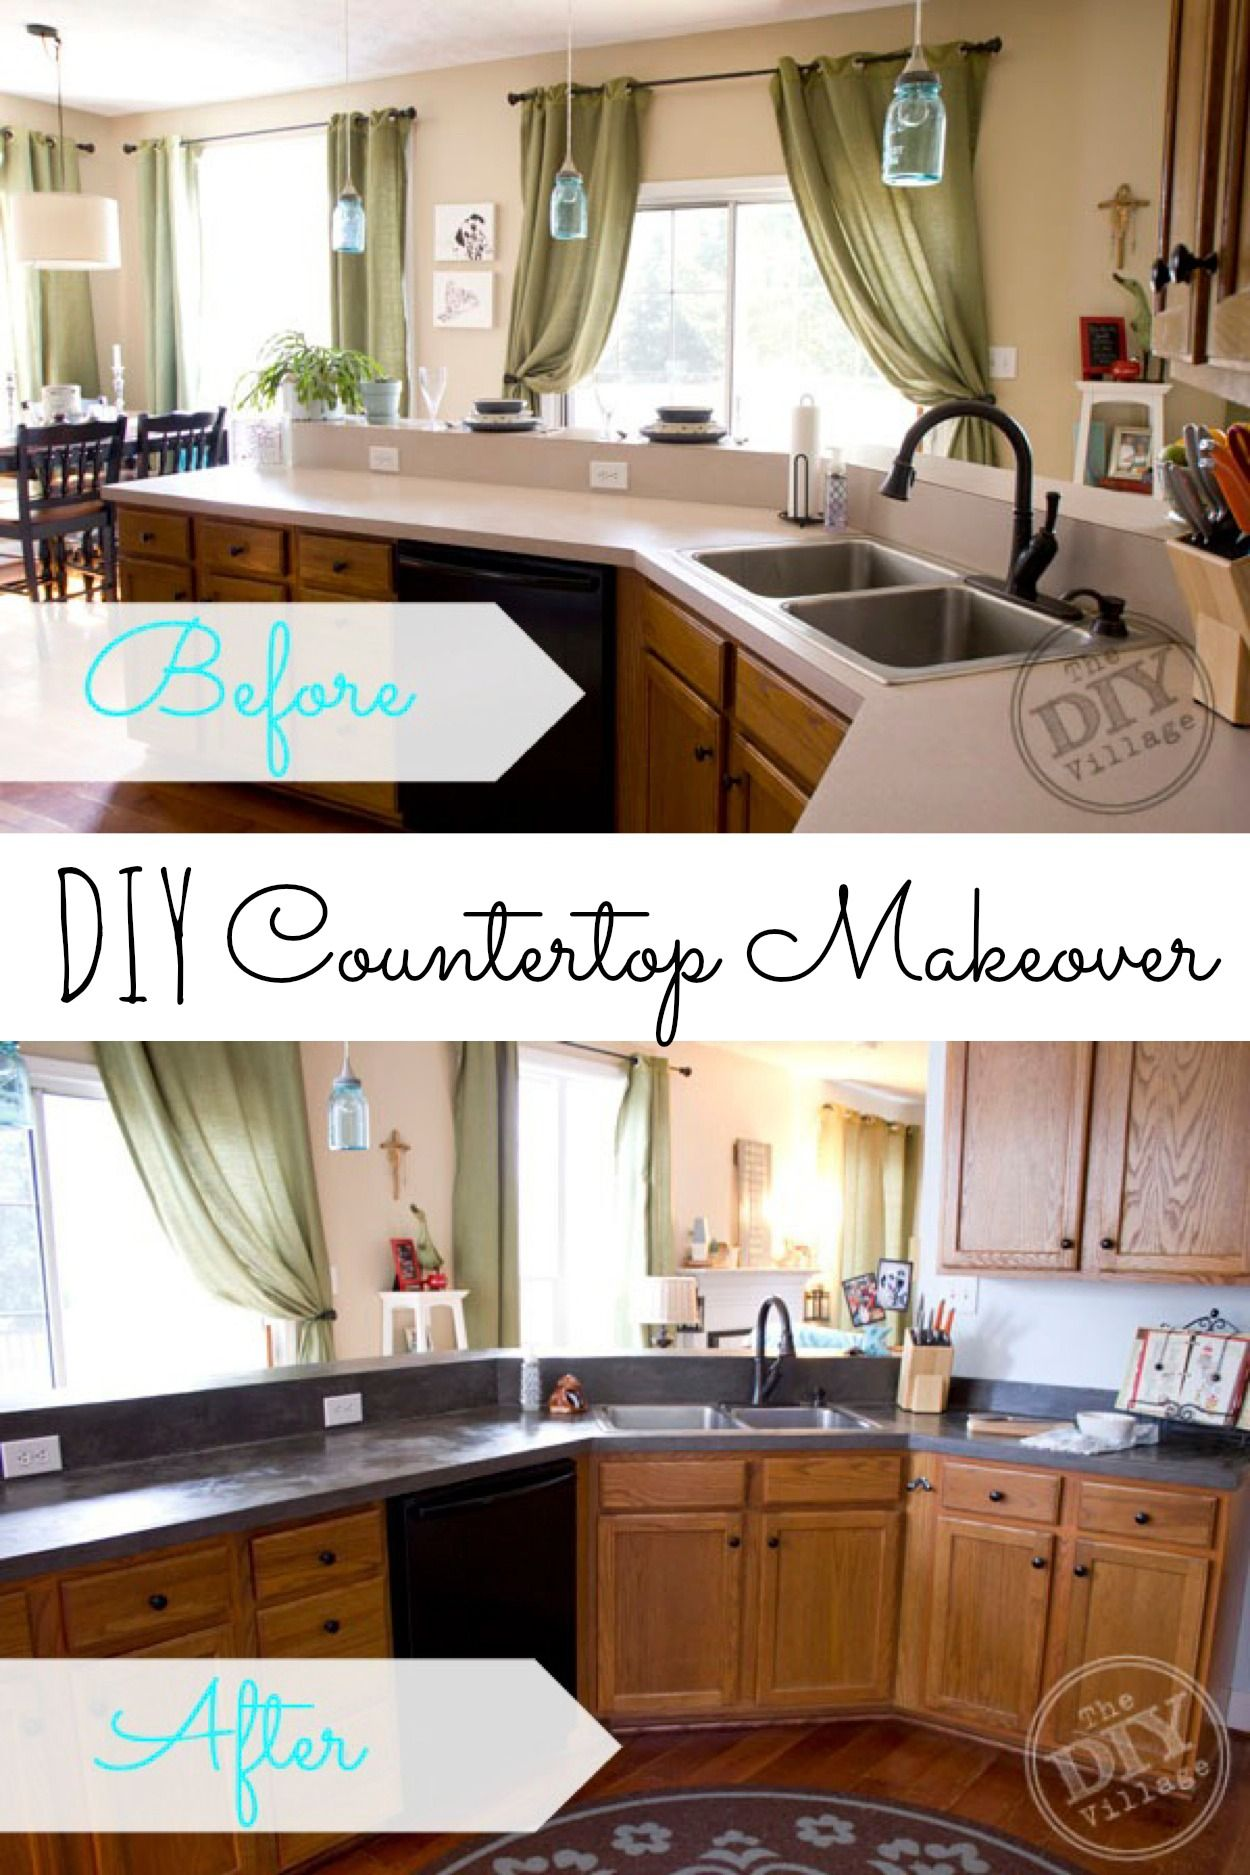 Kitchen Countertop Makeover The Diy Village Countertop